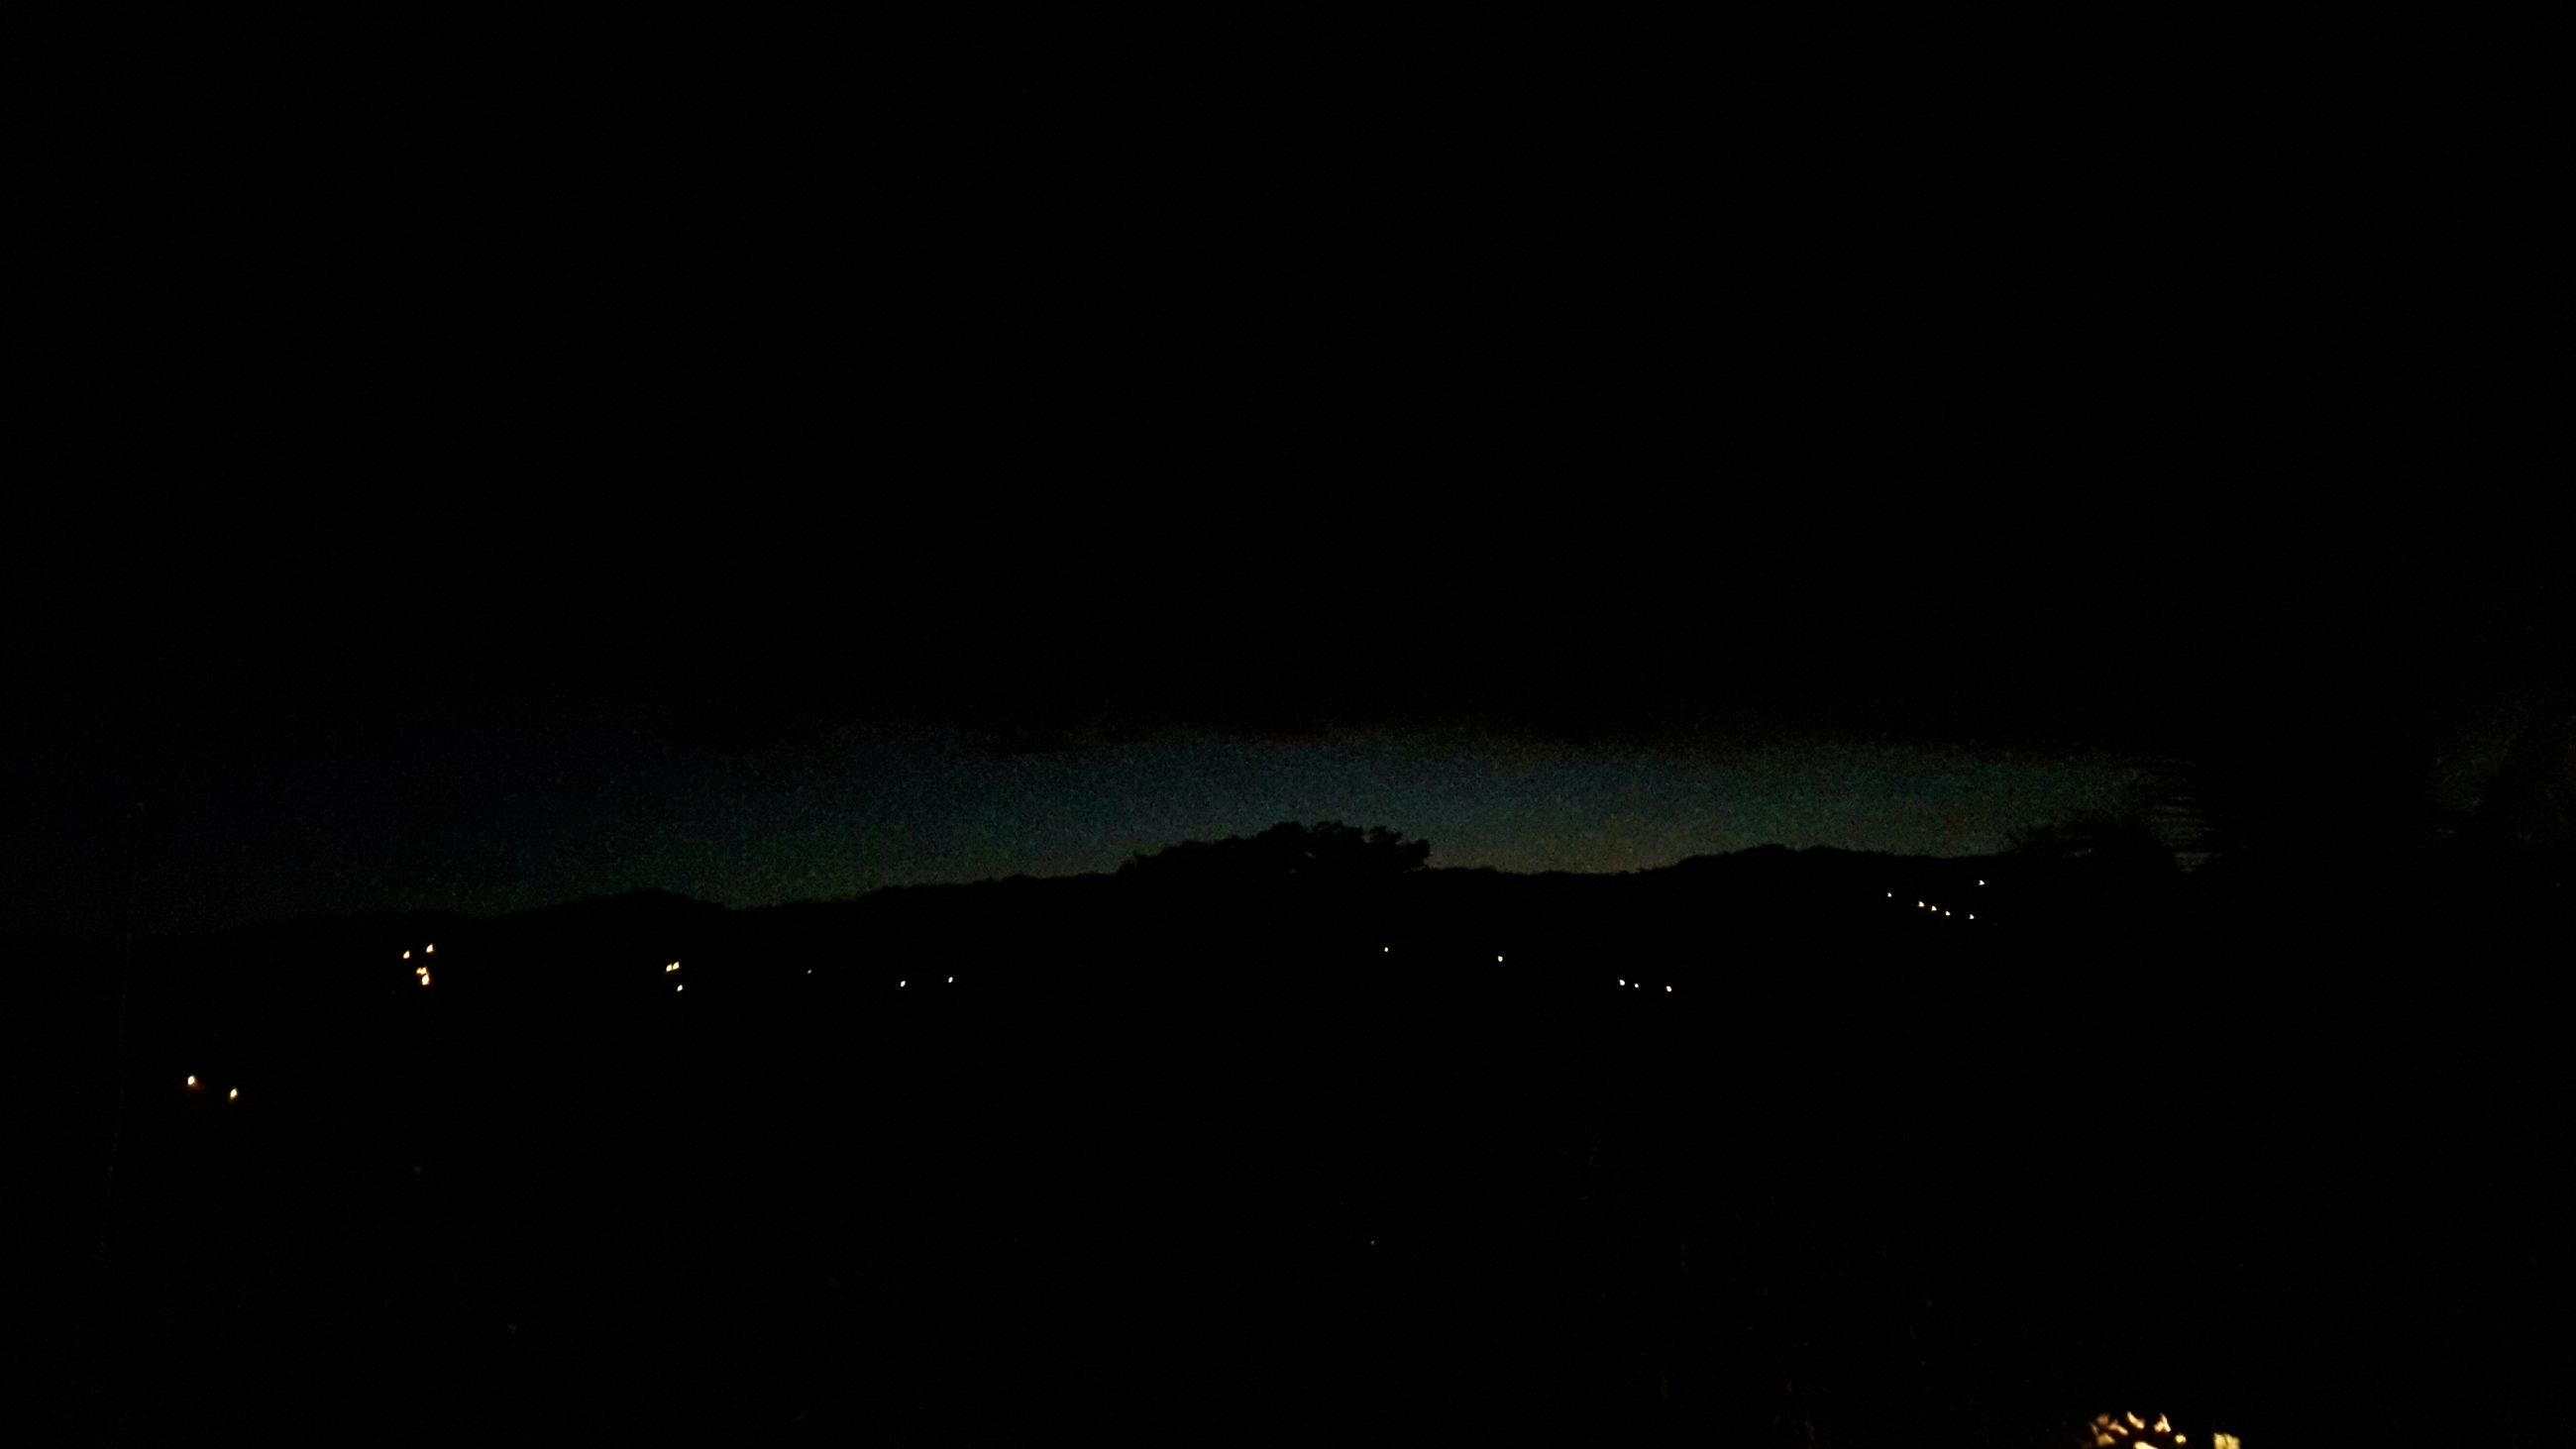 night, silhouette, scenics, copy space, tranquil scene, tranquility, dark, beauty in nature, sky, moon, nature, illuminated, mountain, idyllic, dusk, landscape, clear sky, outdoors, no people, majestic